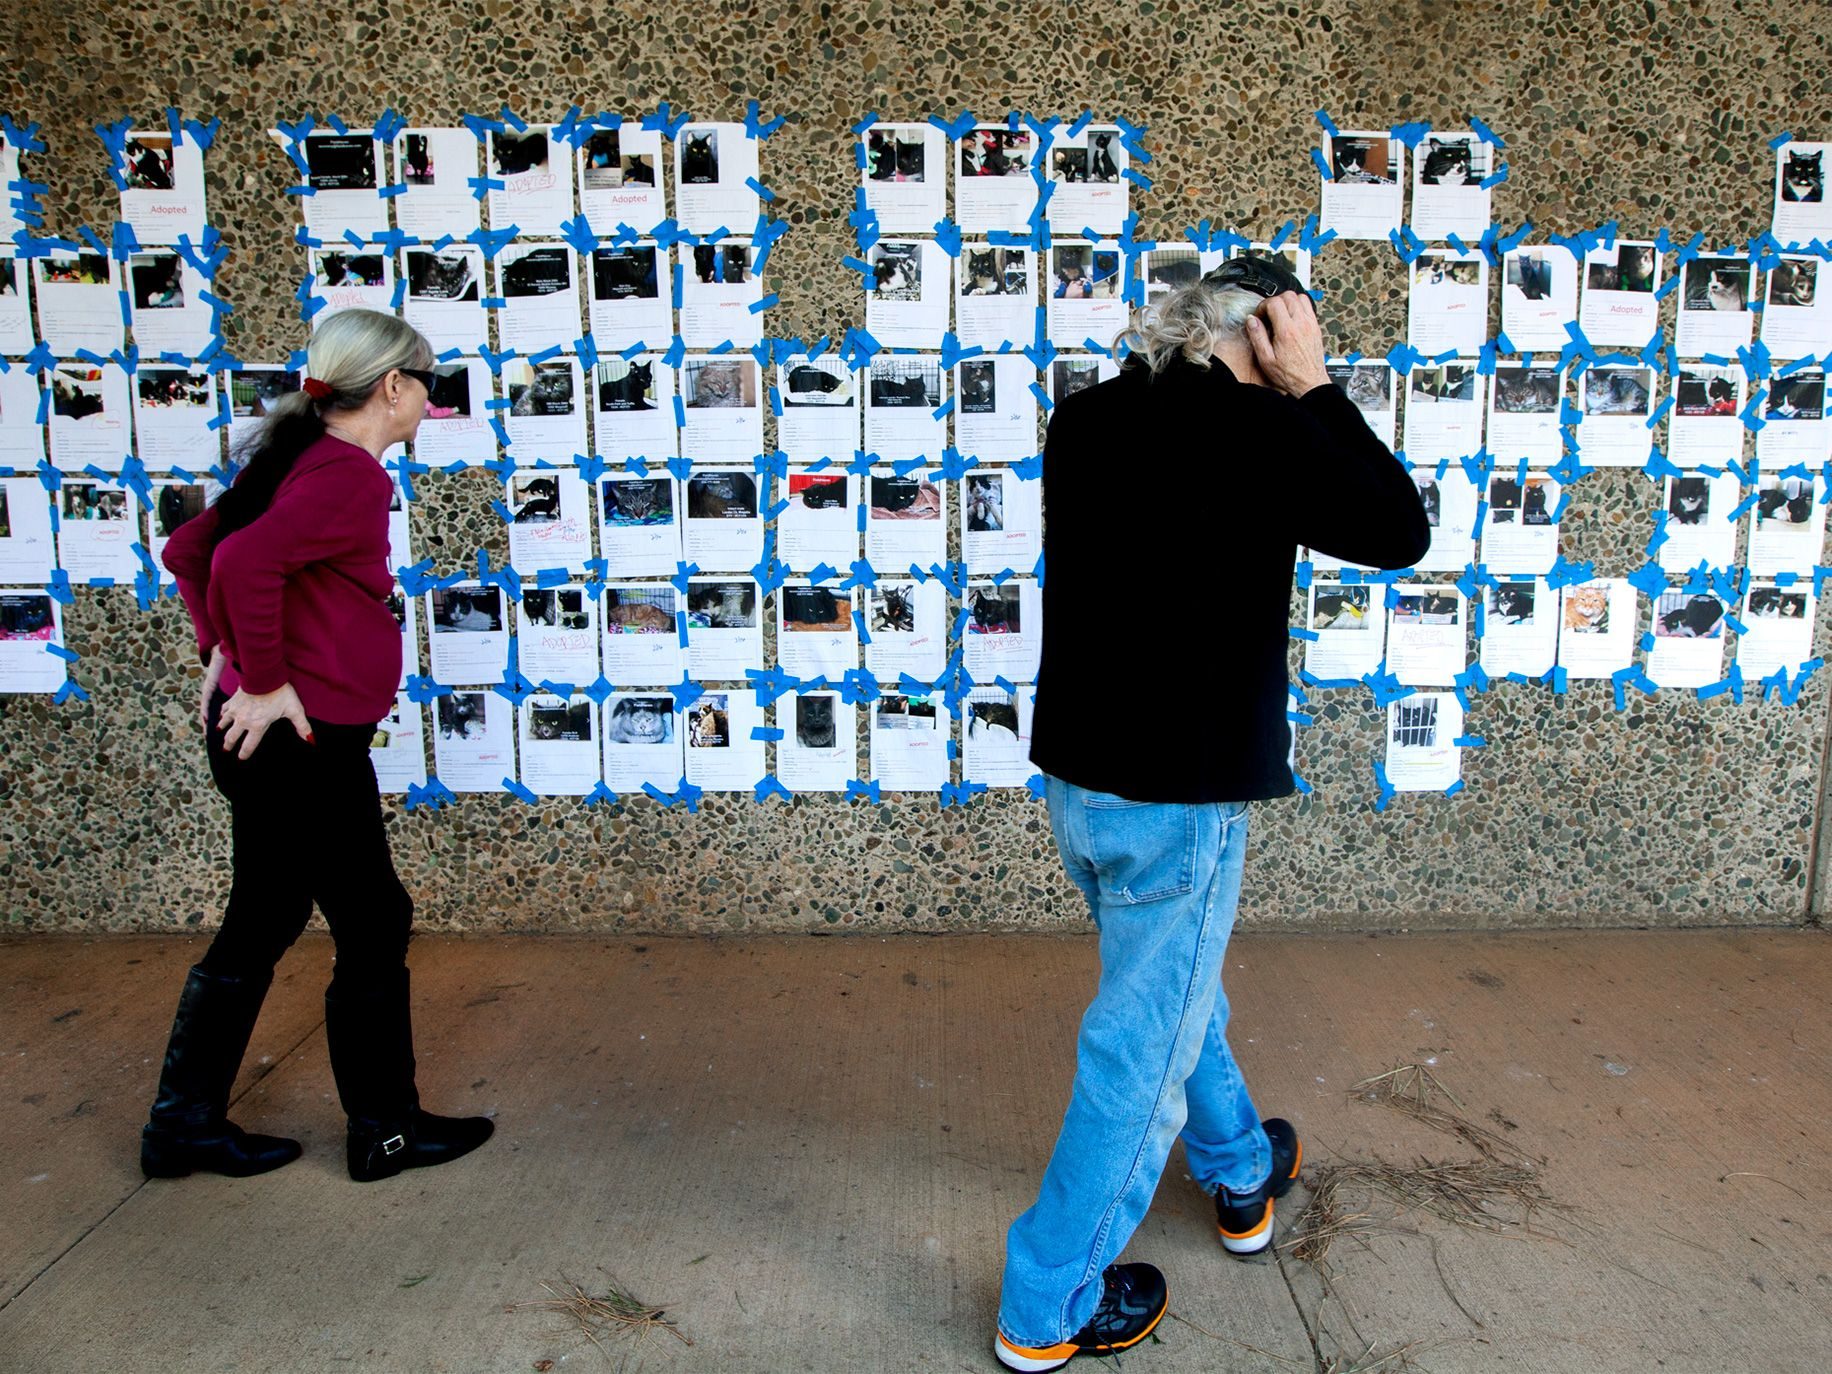 Paradise residents Wendy Cobb and Marc Darling search for their two missing cats on a message board at the town's Ponderosa Elementary School.